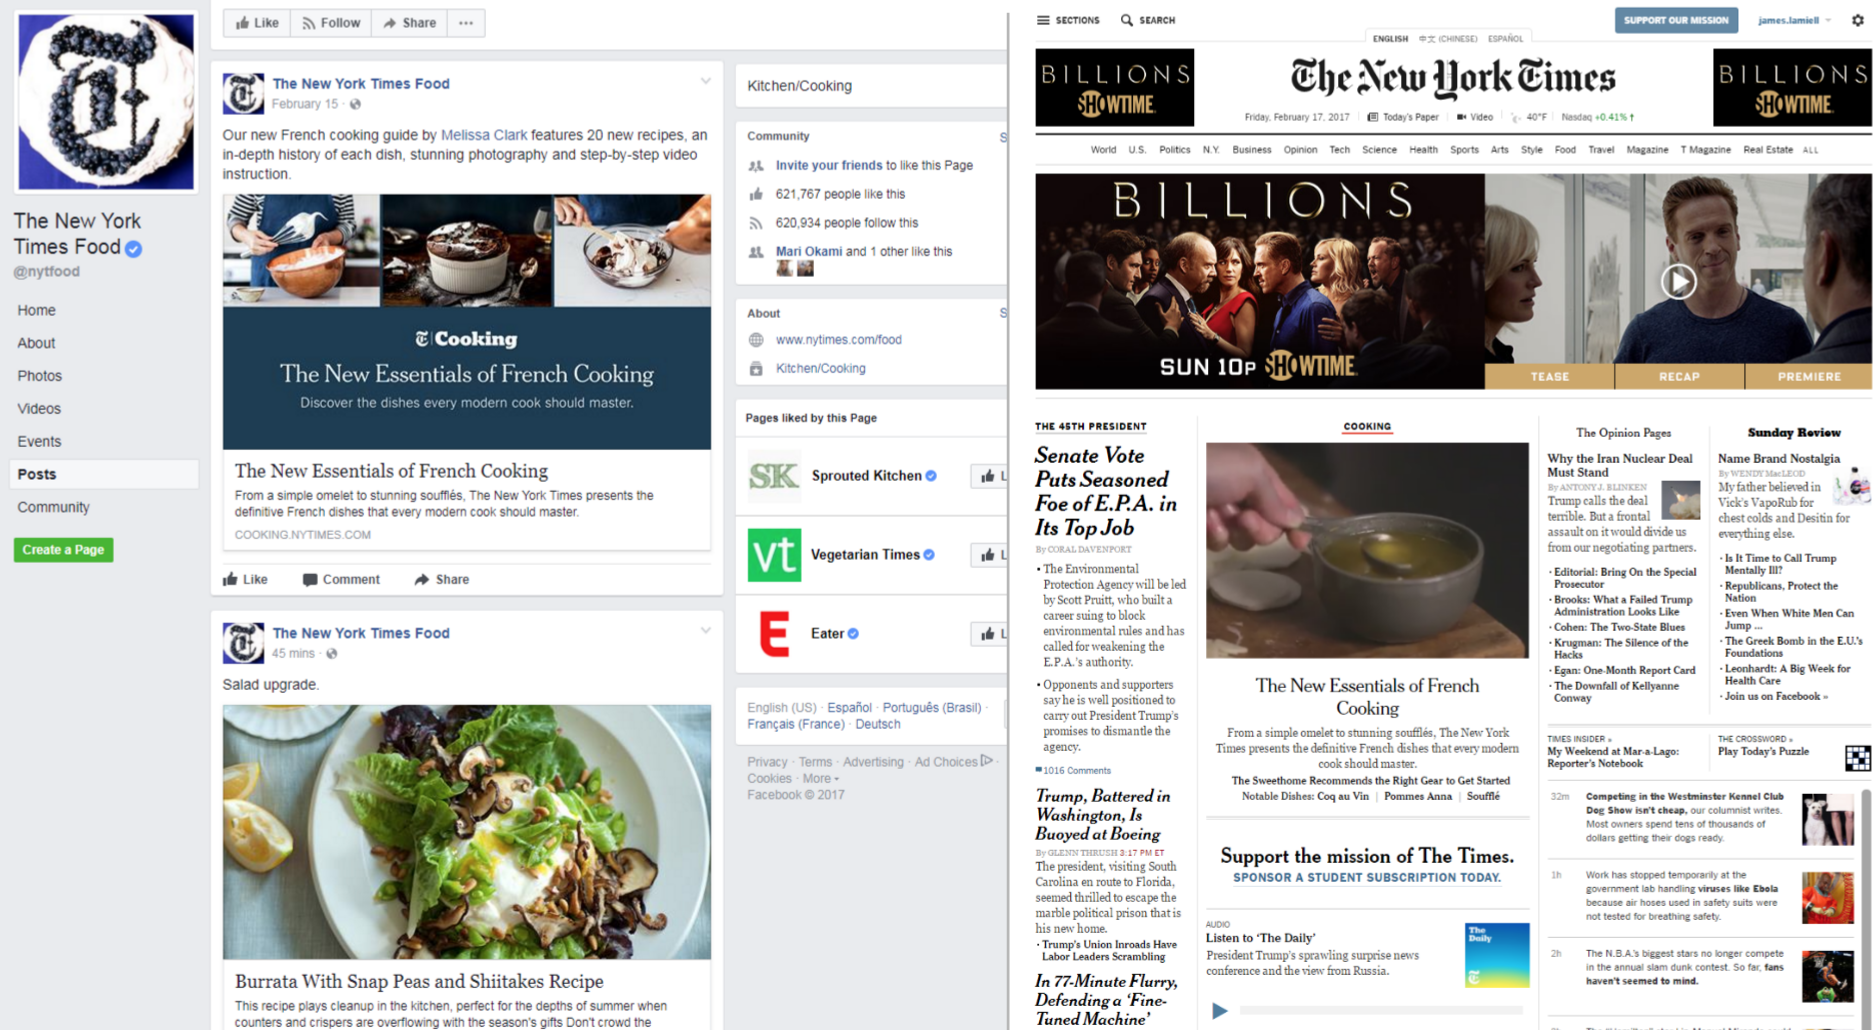 Promotion for The New Essentials of French Cooking spanned the entire NYT ecosystem, from our social accounts to the homepage of our news site.